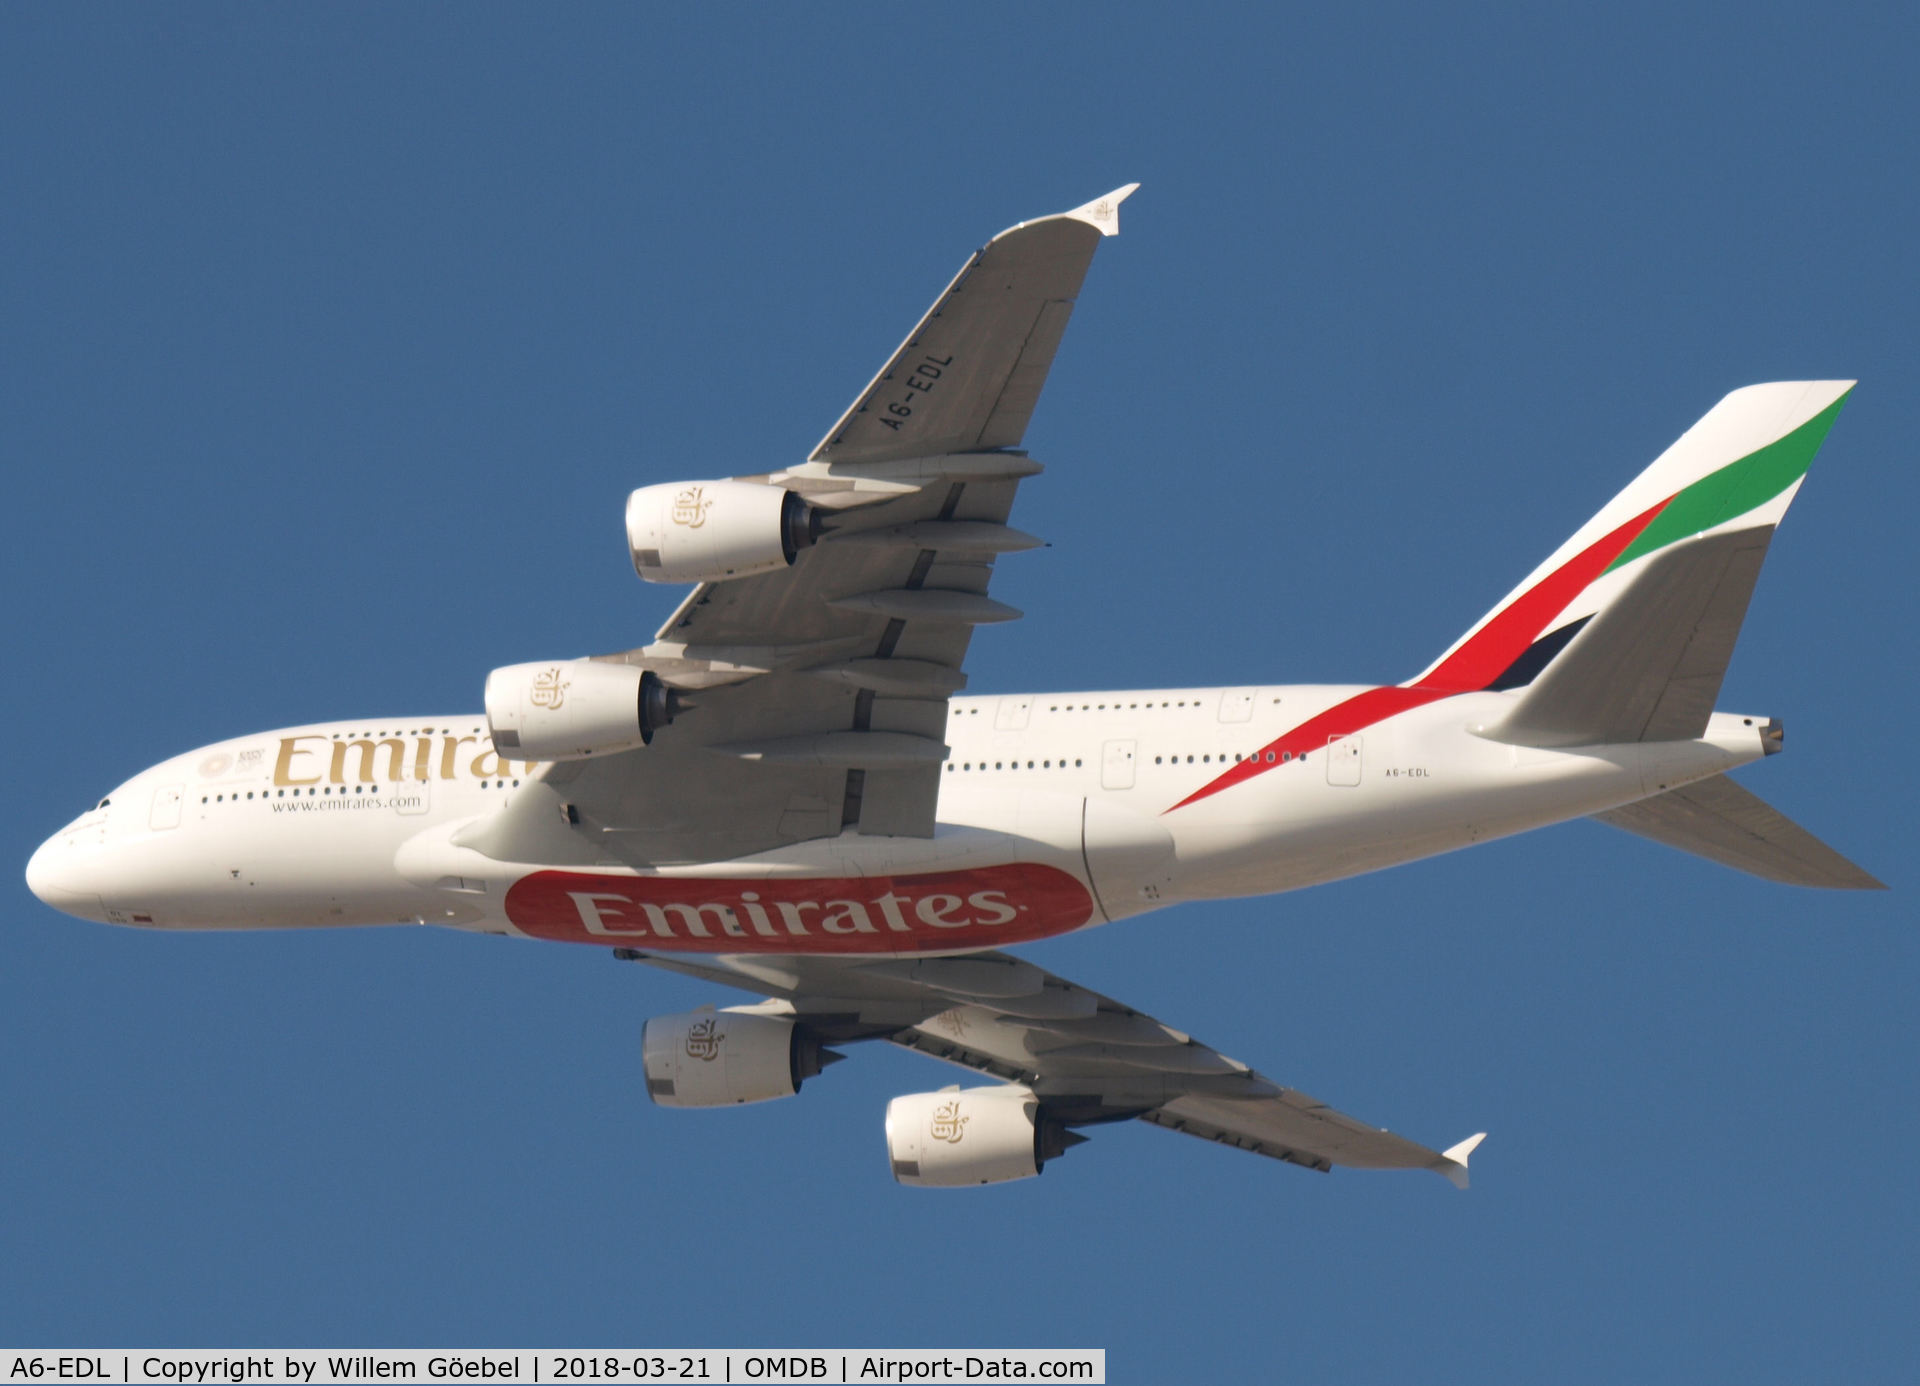 A6-EDL, 2010 Airbus A380-861 C/N 046, Take off from DUBAI INTERNATIONAL Airport